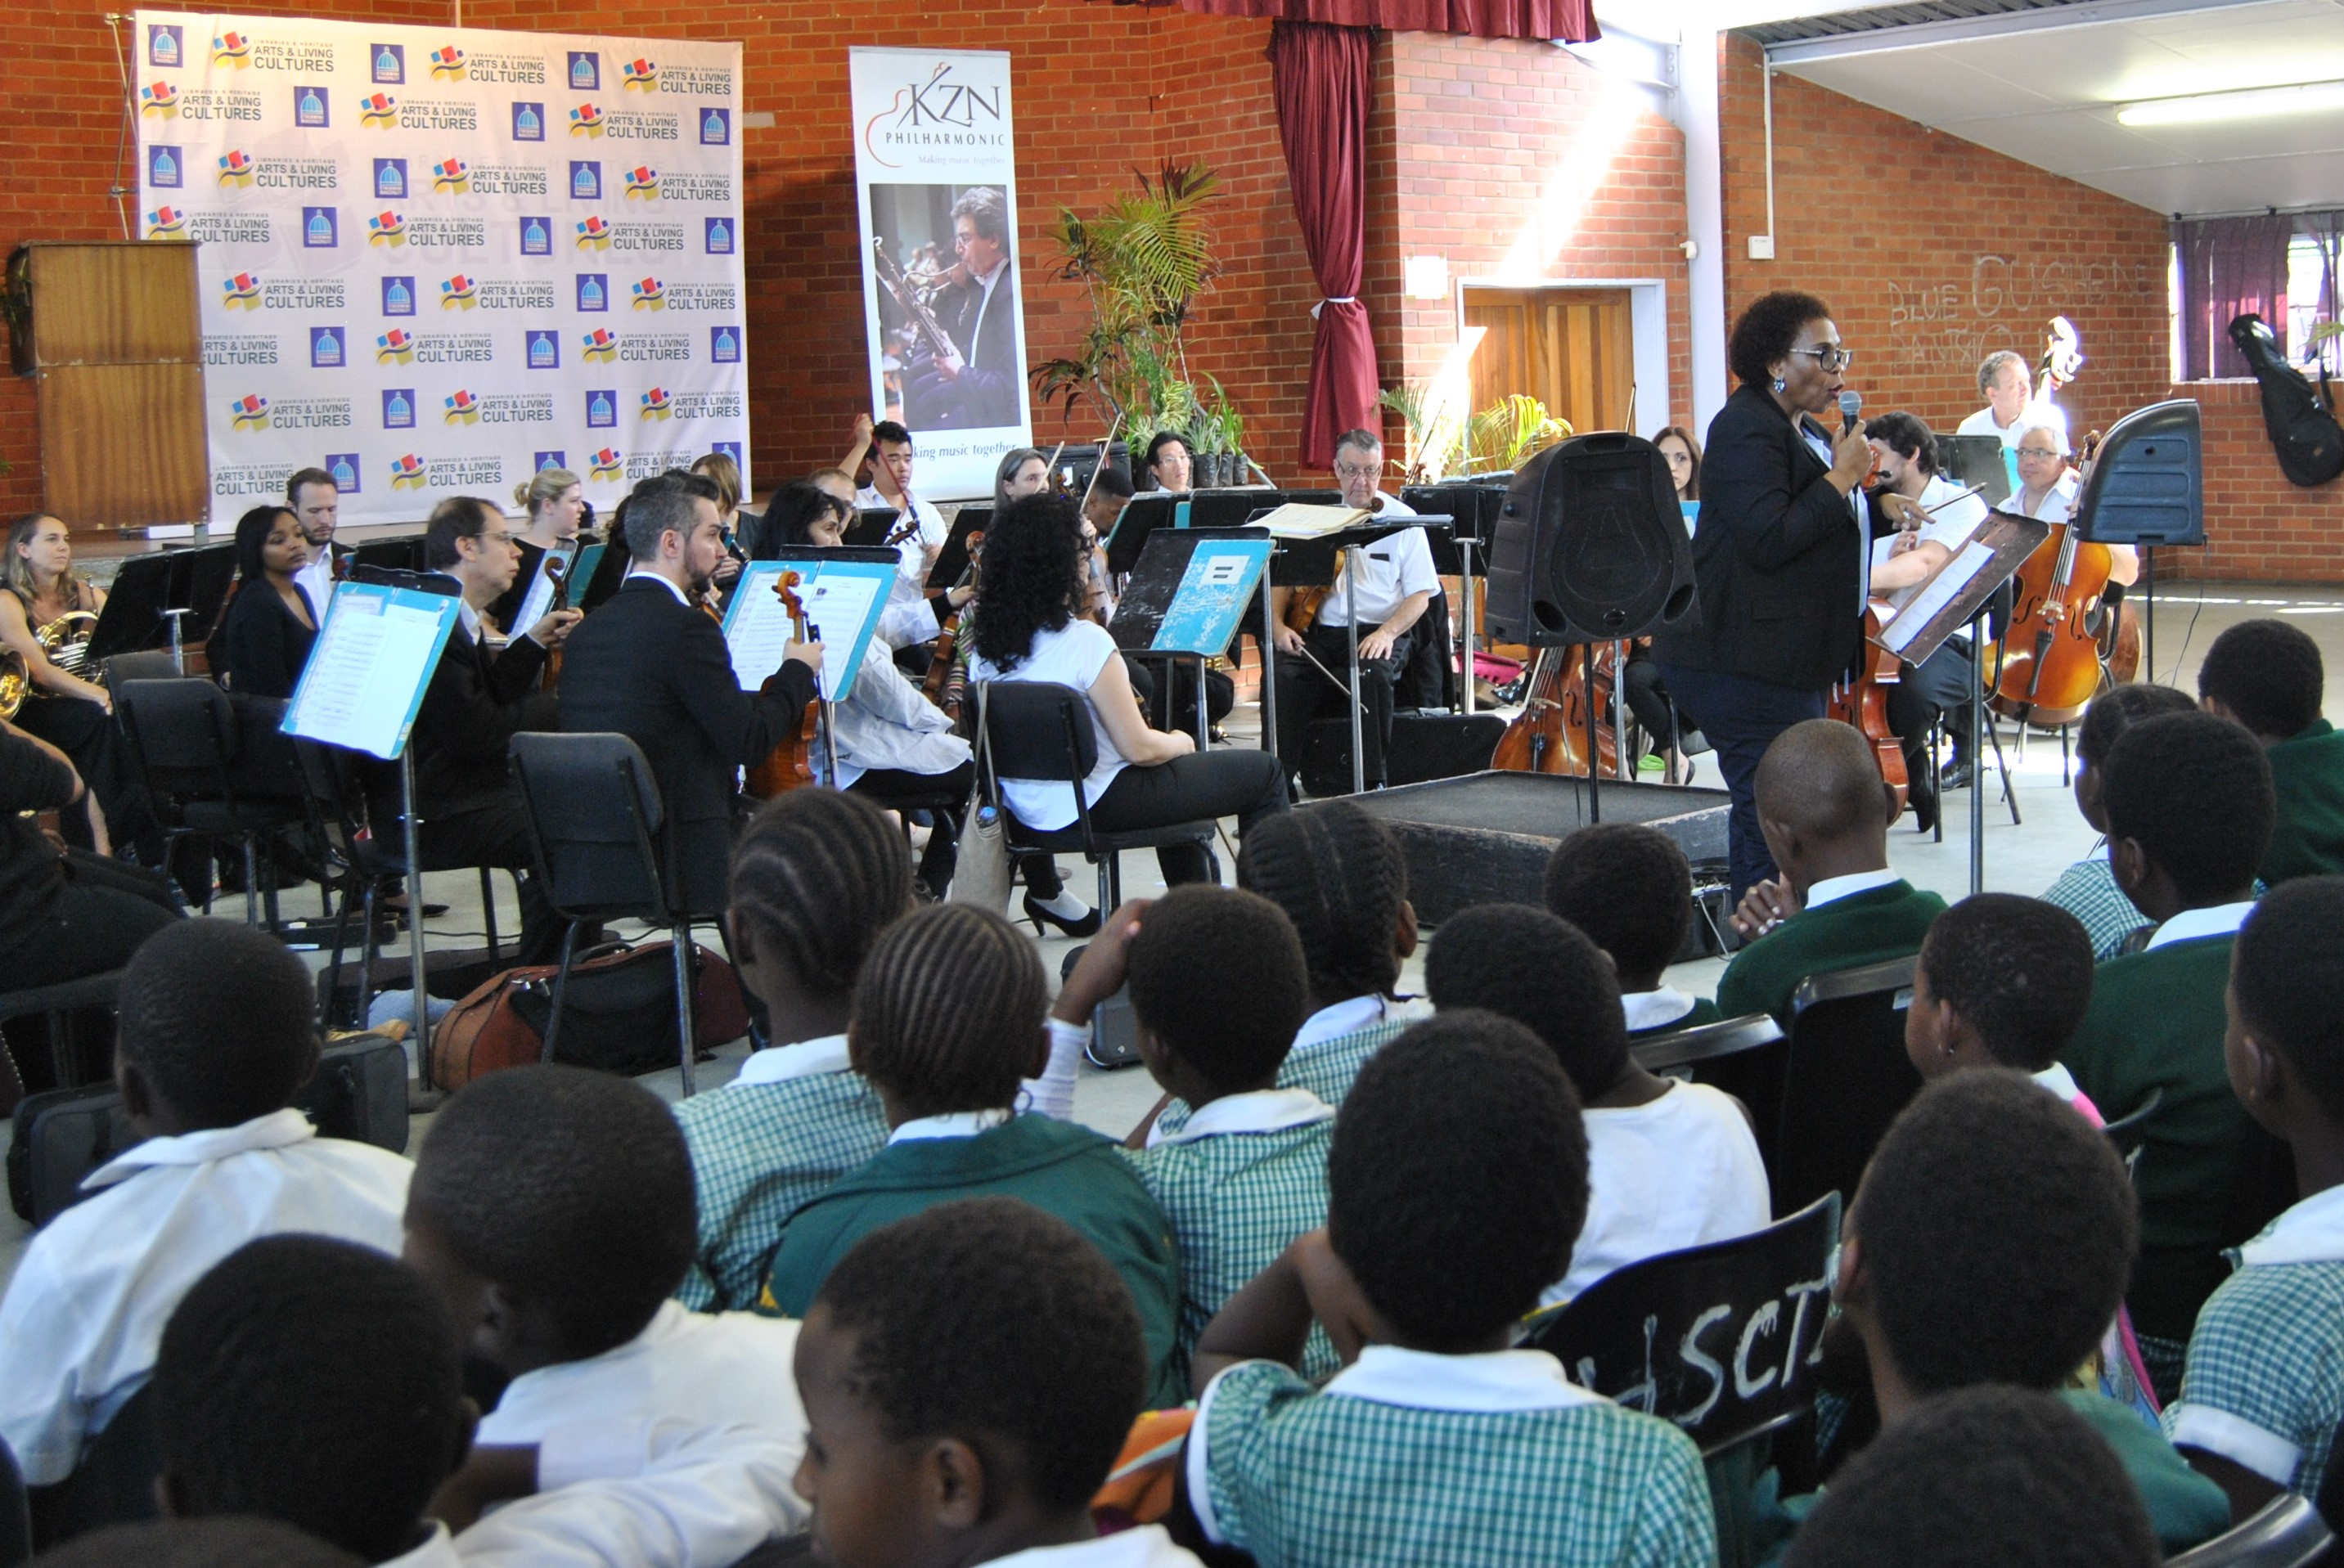 Arte Concert Jobs Kzn Philharmonic Orchestra Mbongweni Primary School